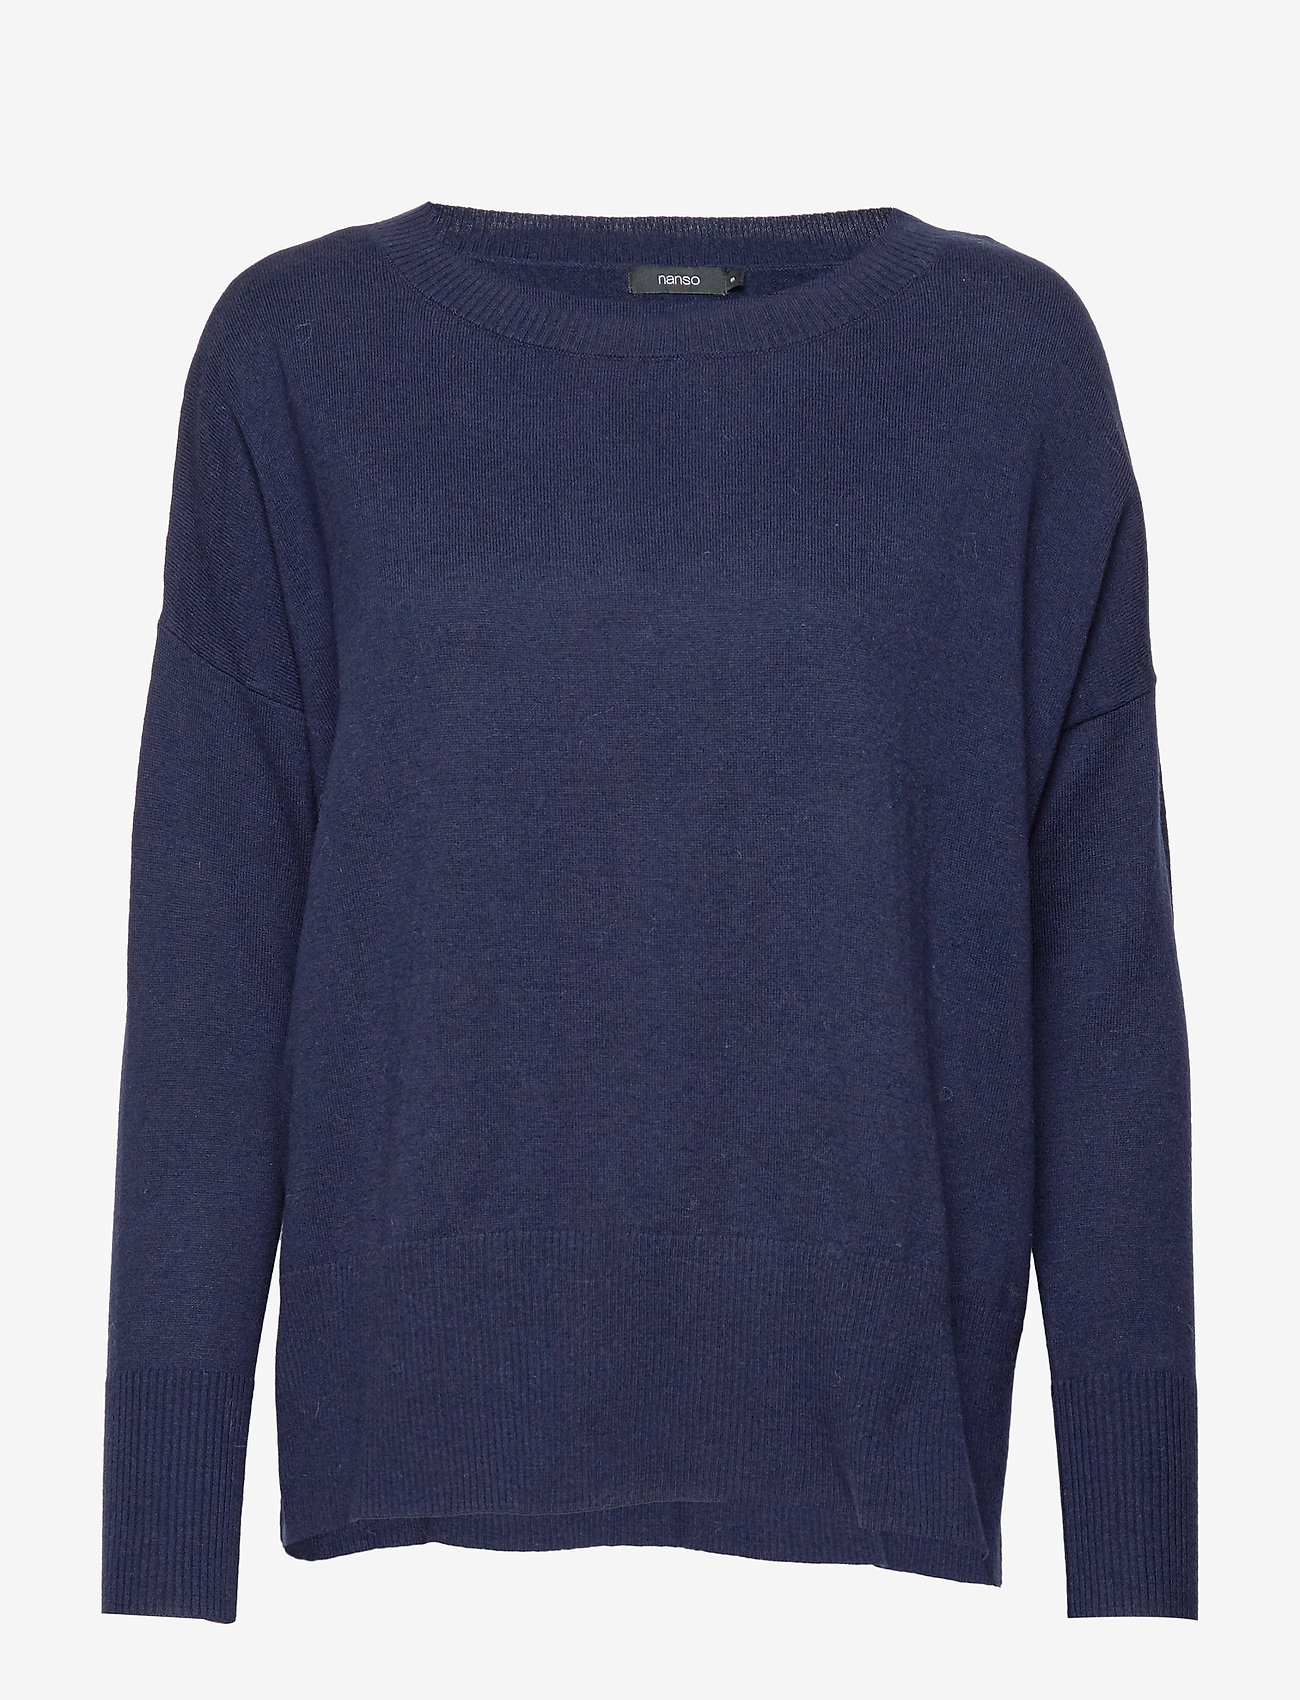 Nanso - Ladies knit sweater, Villis - neulepuserot - dark blue - 0